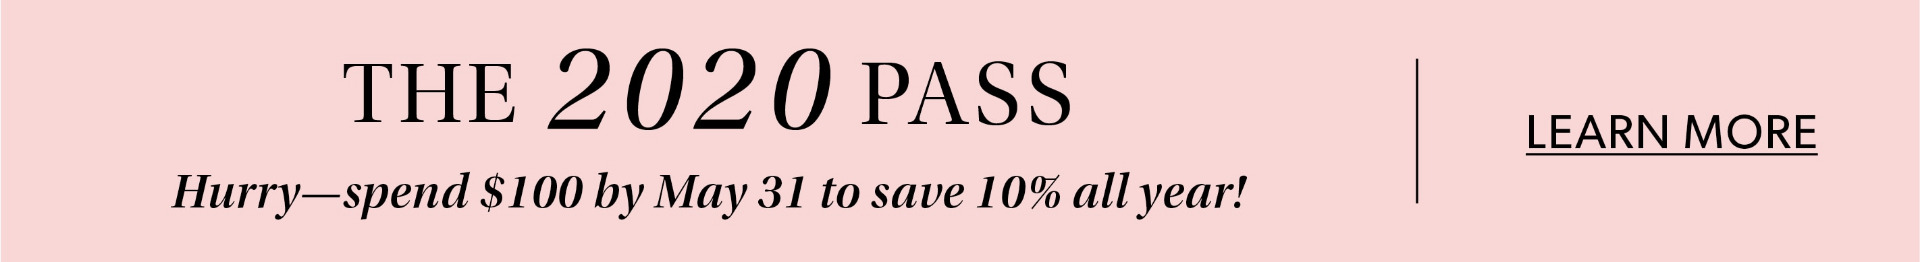 2020 Pass - Buy Now, Save 10% All Year -  Read More Details